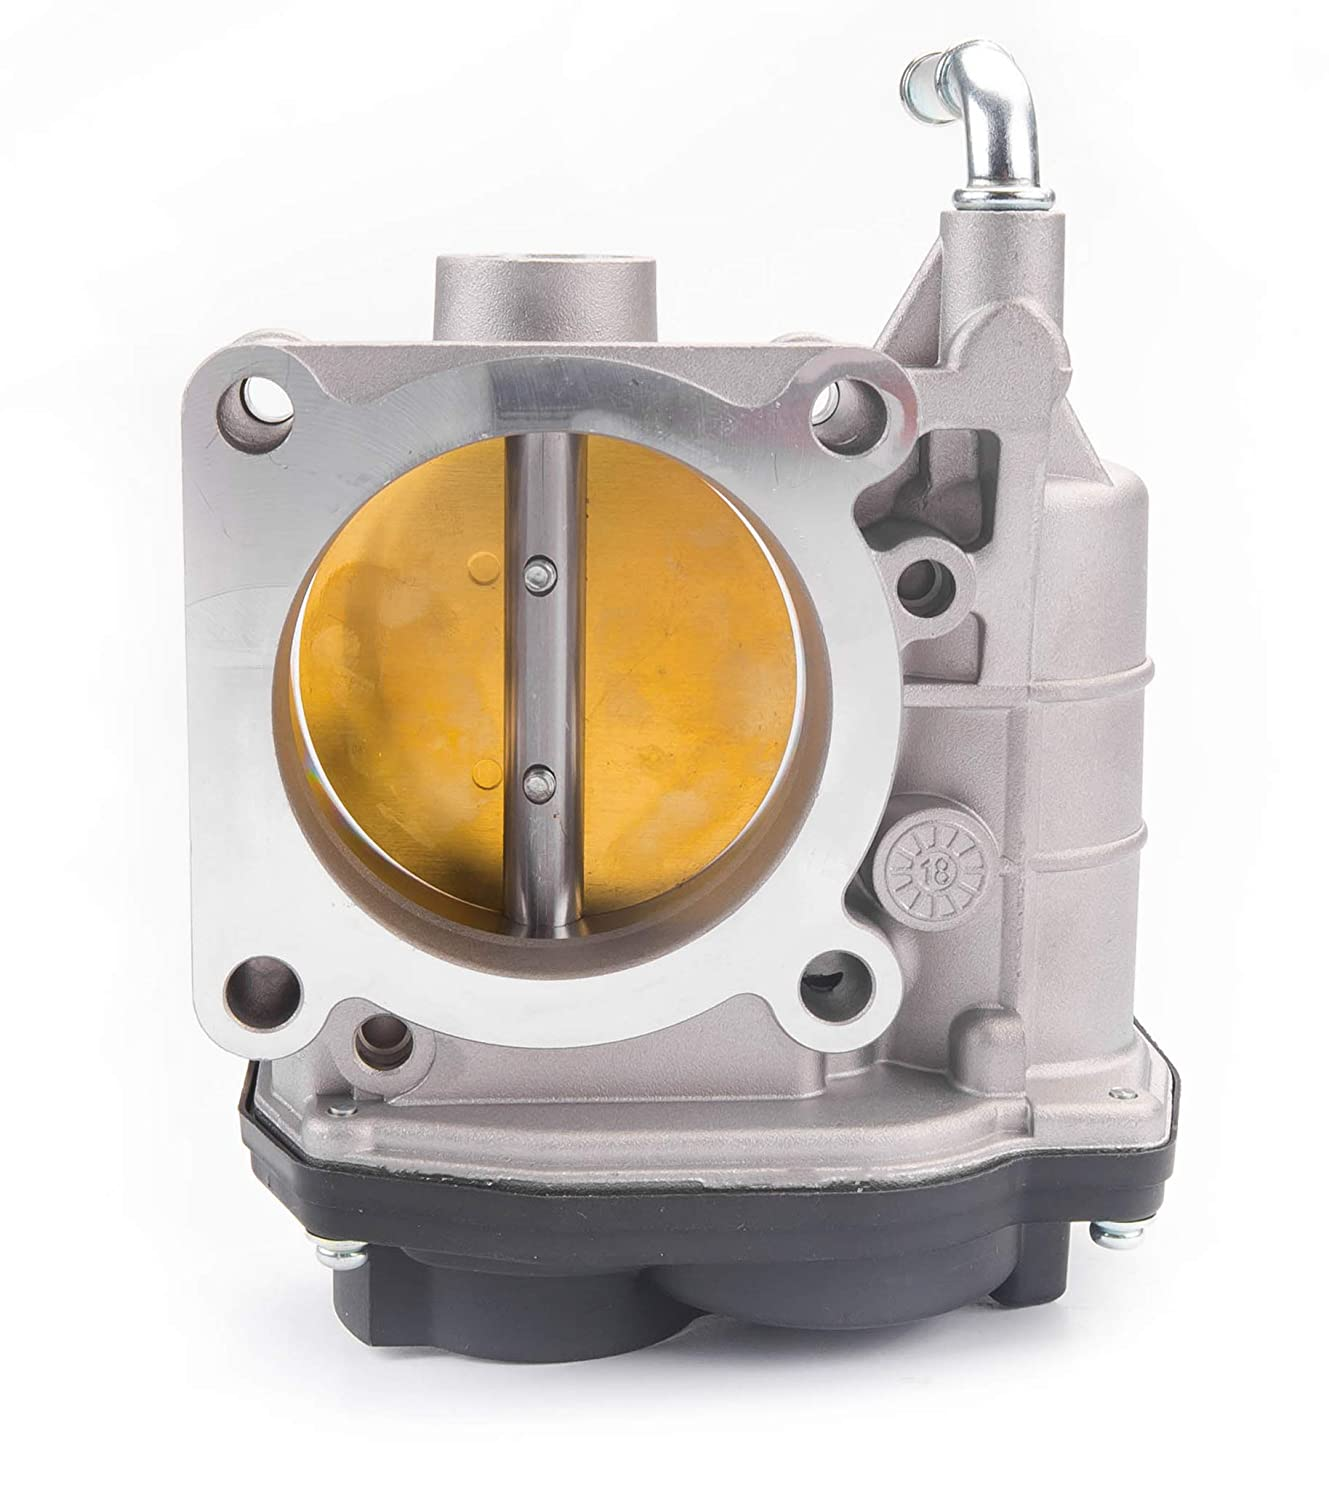 Tecoom 16119-JA00A Electronic Fuel Injection Throttle Body for Nissan Altima Rogue Sentra 2007-2012 2.5L